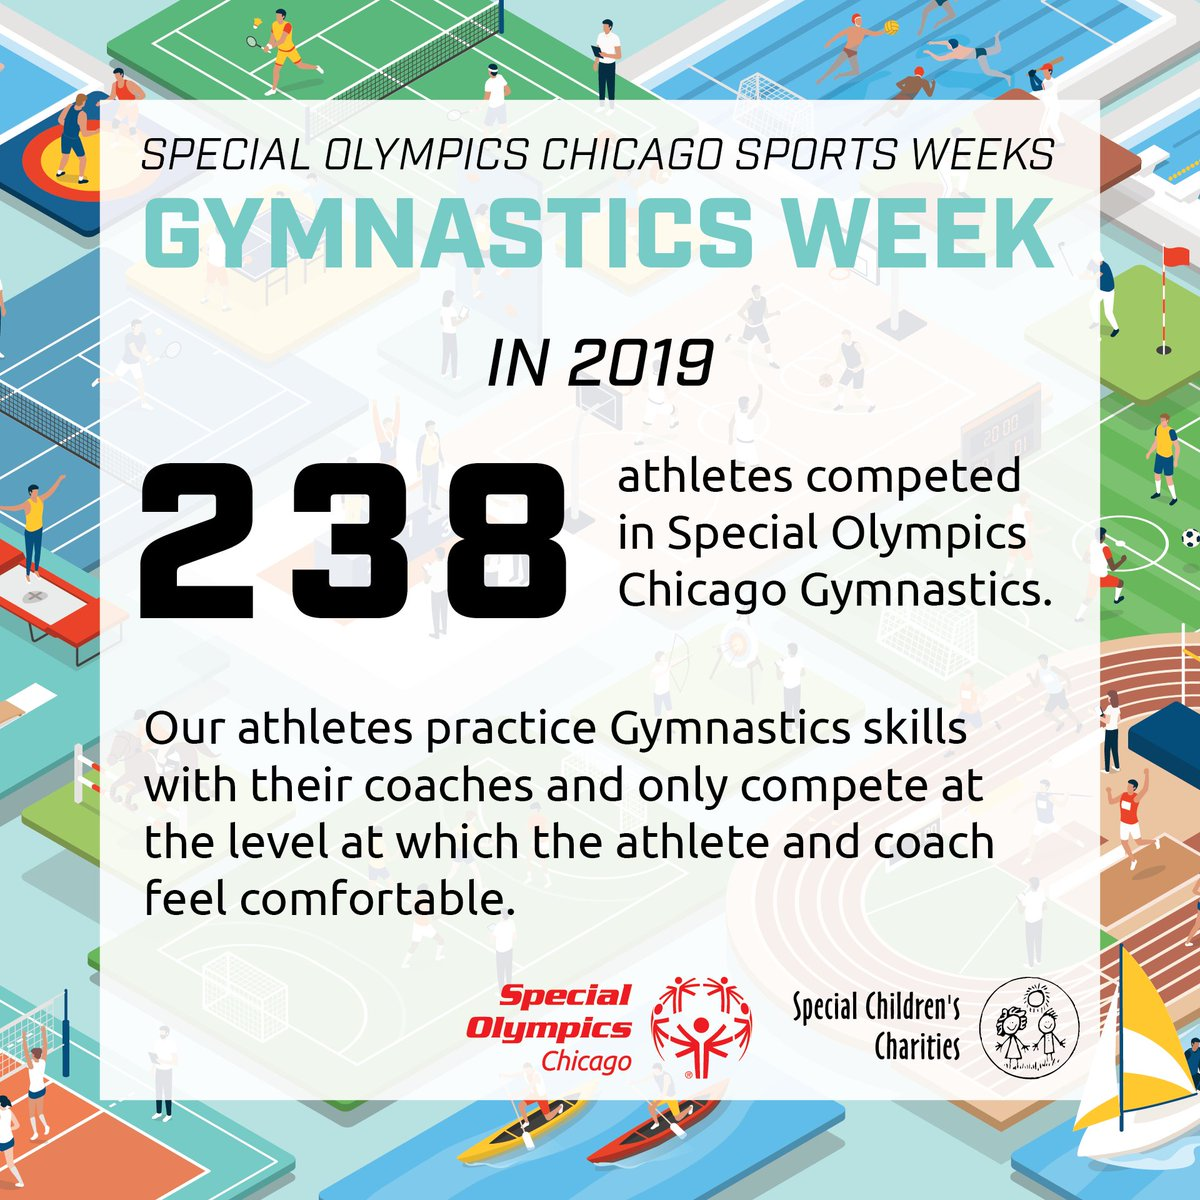 In 2019 238 athletes competed in Special Olympics Chicago Gymnastics. Our athletes practice Gymnastics skills with their coaches and only compete at the level at which the athlete and coach feel comfortable. https://t.co/CSETem75O1